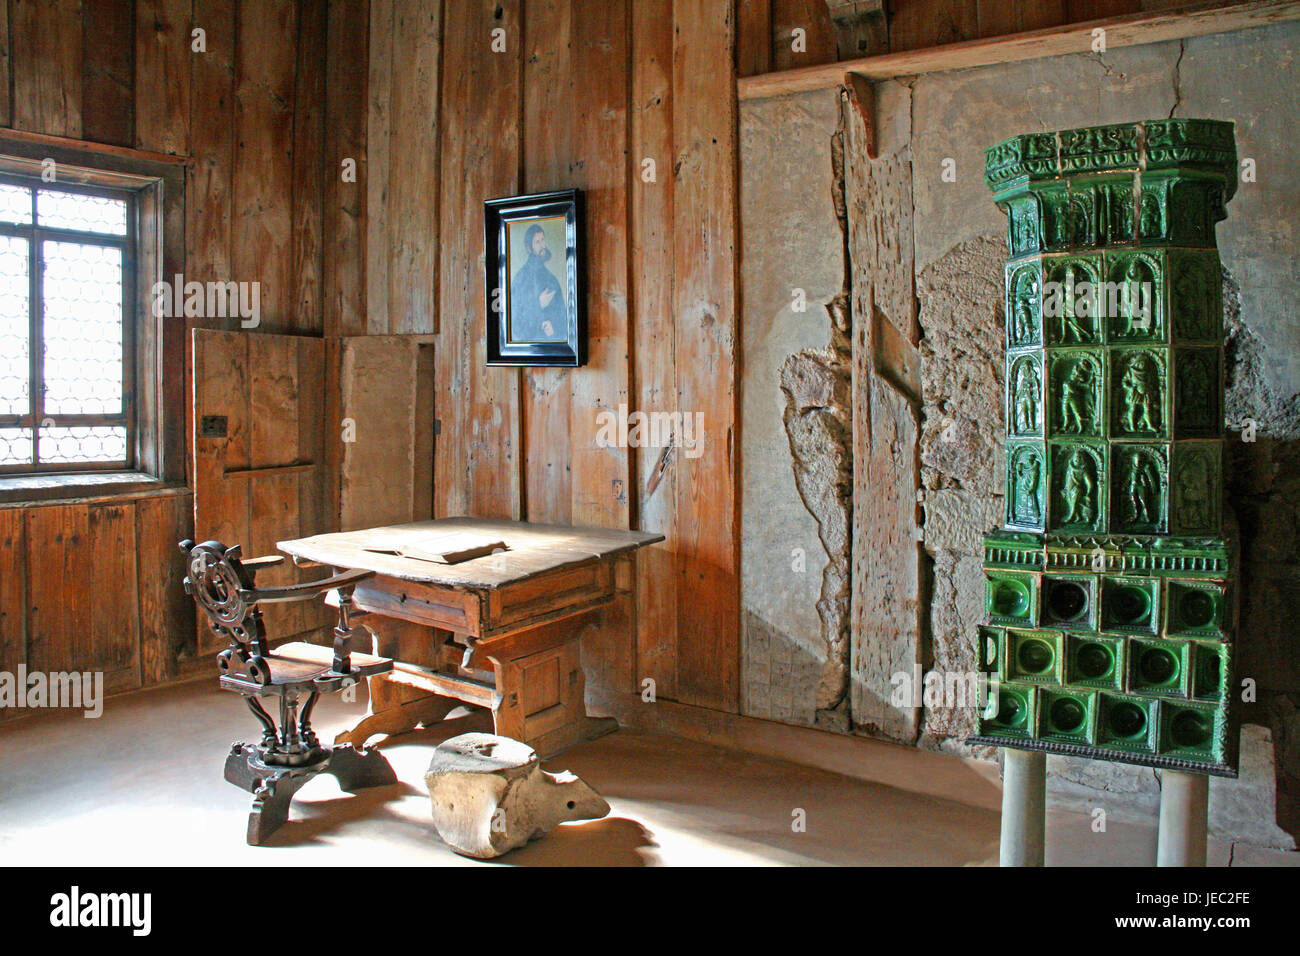 Germany, Thuringia, Eisenach, Wartburg, Lutherstube, room, room, place of residence, Luther, gear ratio, tiled stove, - Stock Image